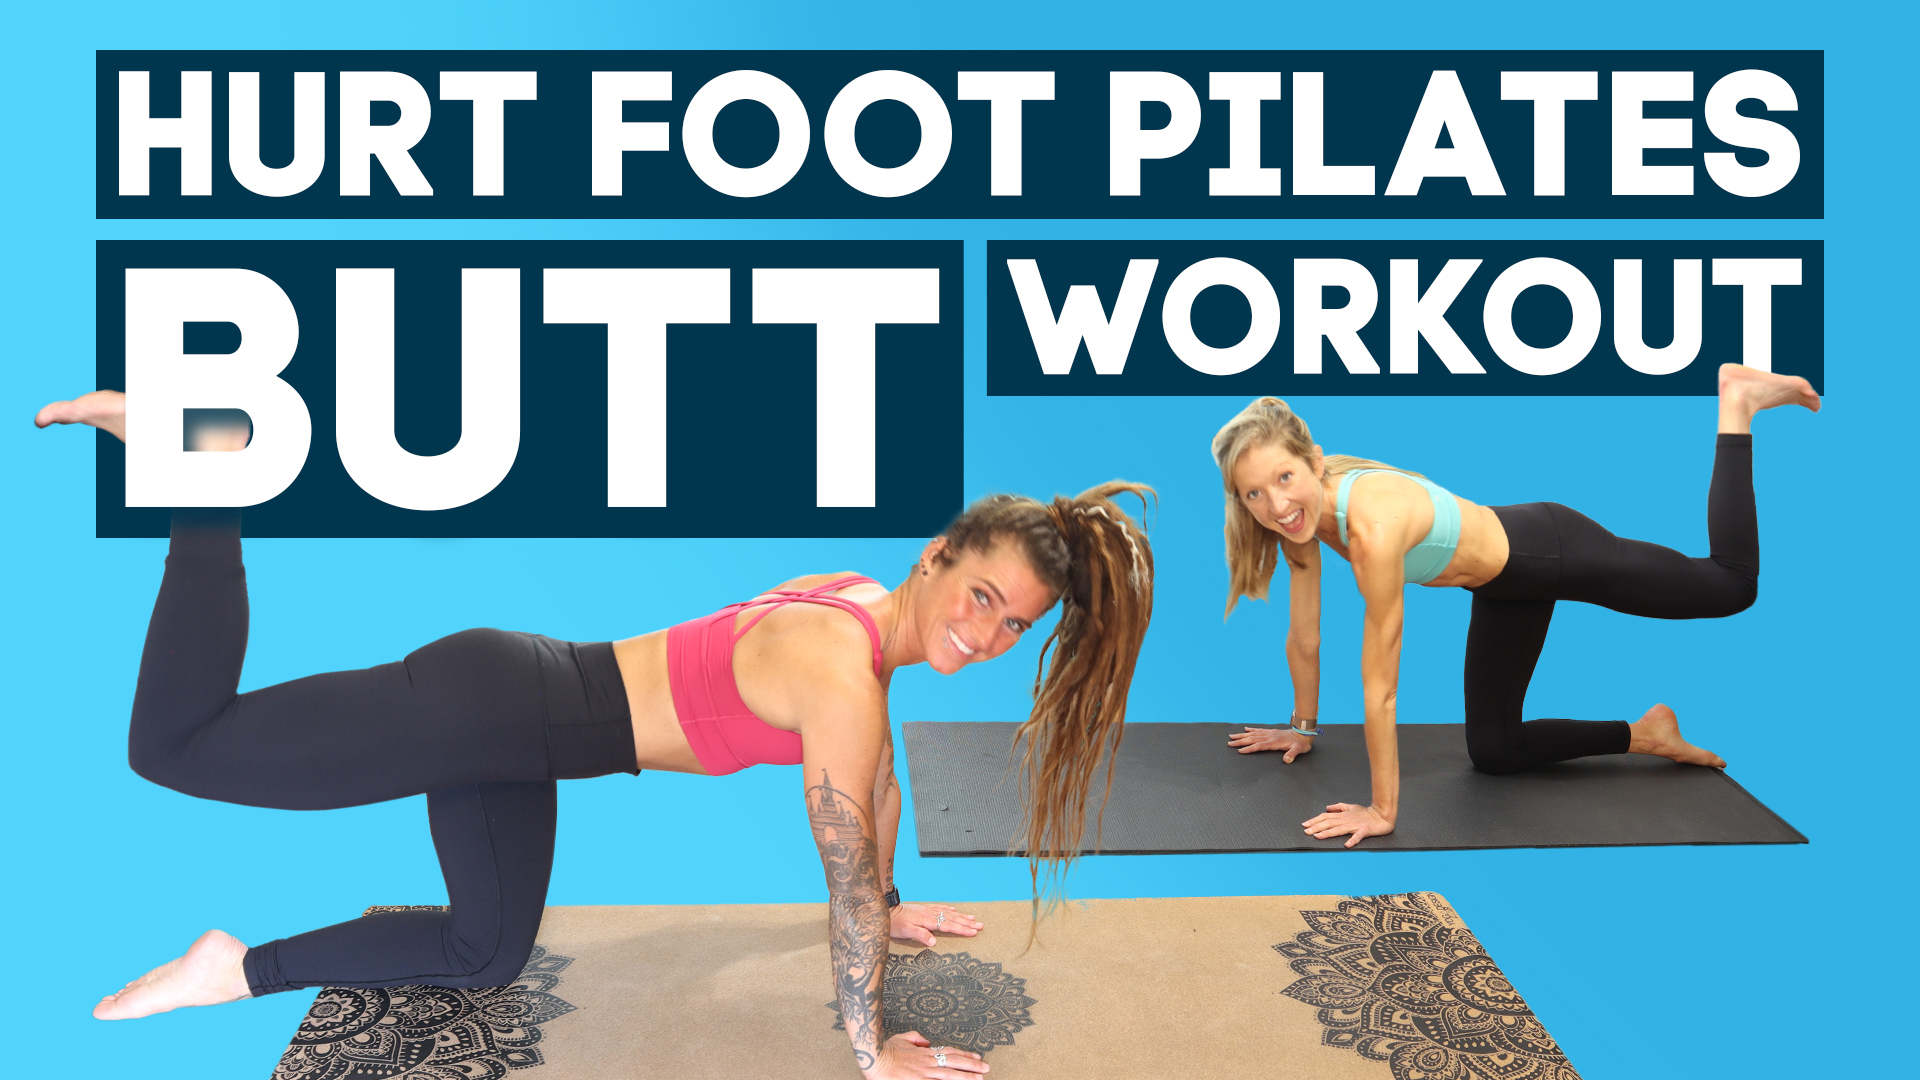 hurt foot pilates butt